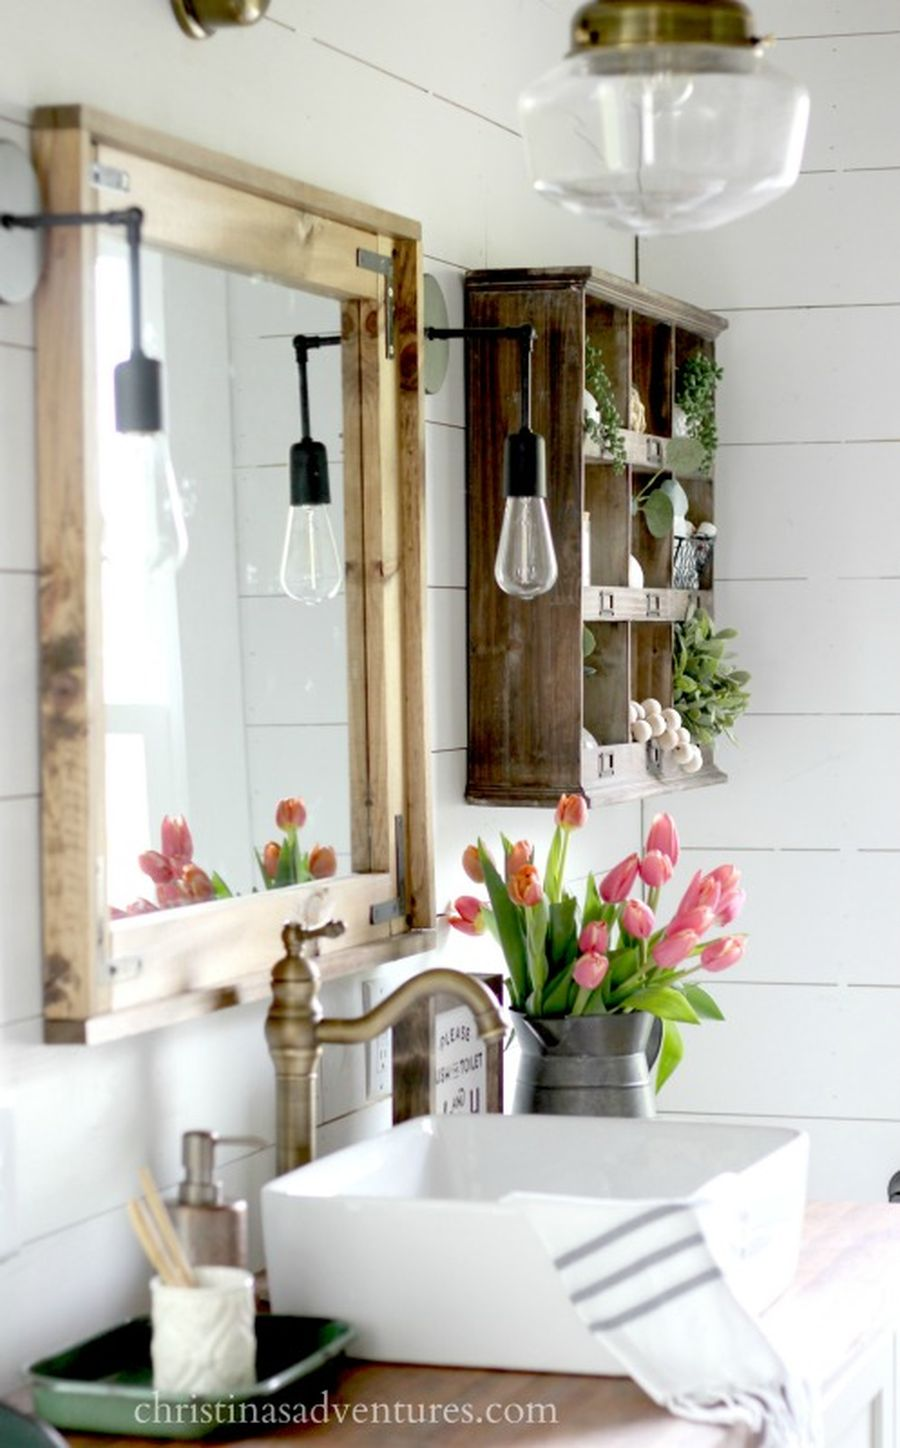 Rustic farmhouse style bathroom design ideas 63